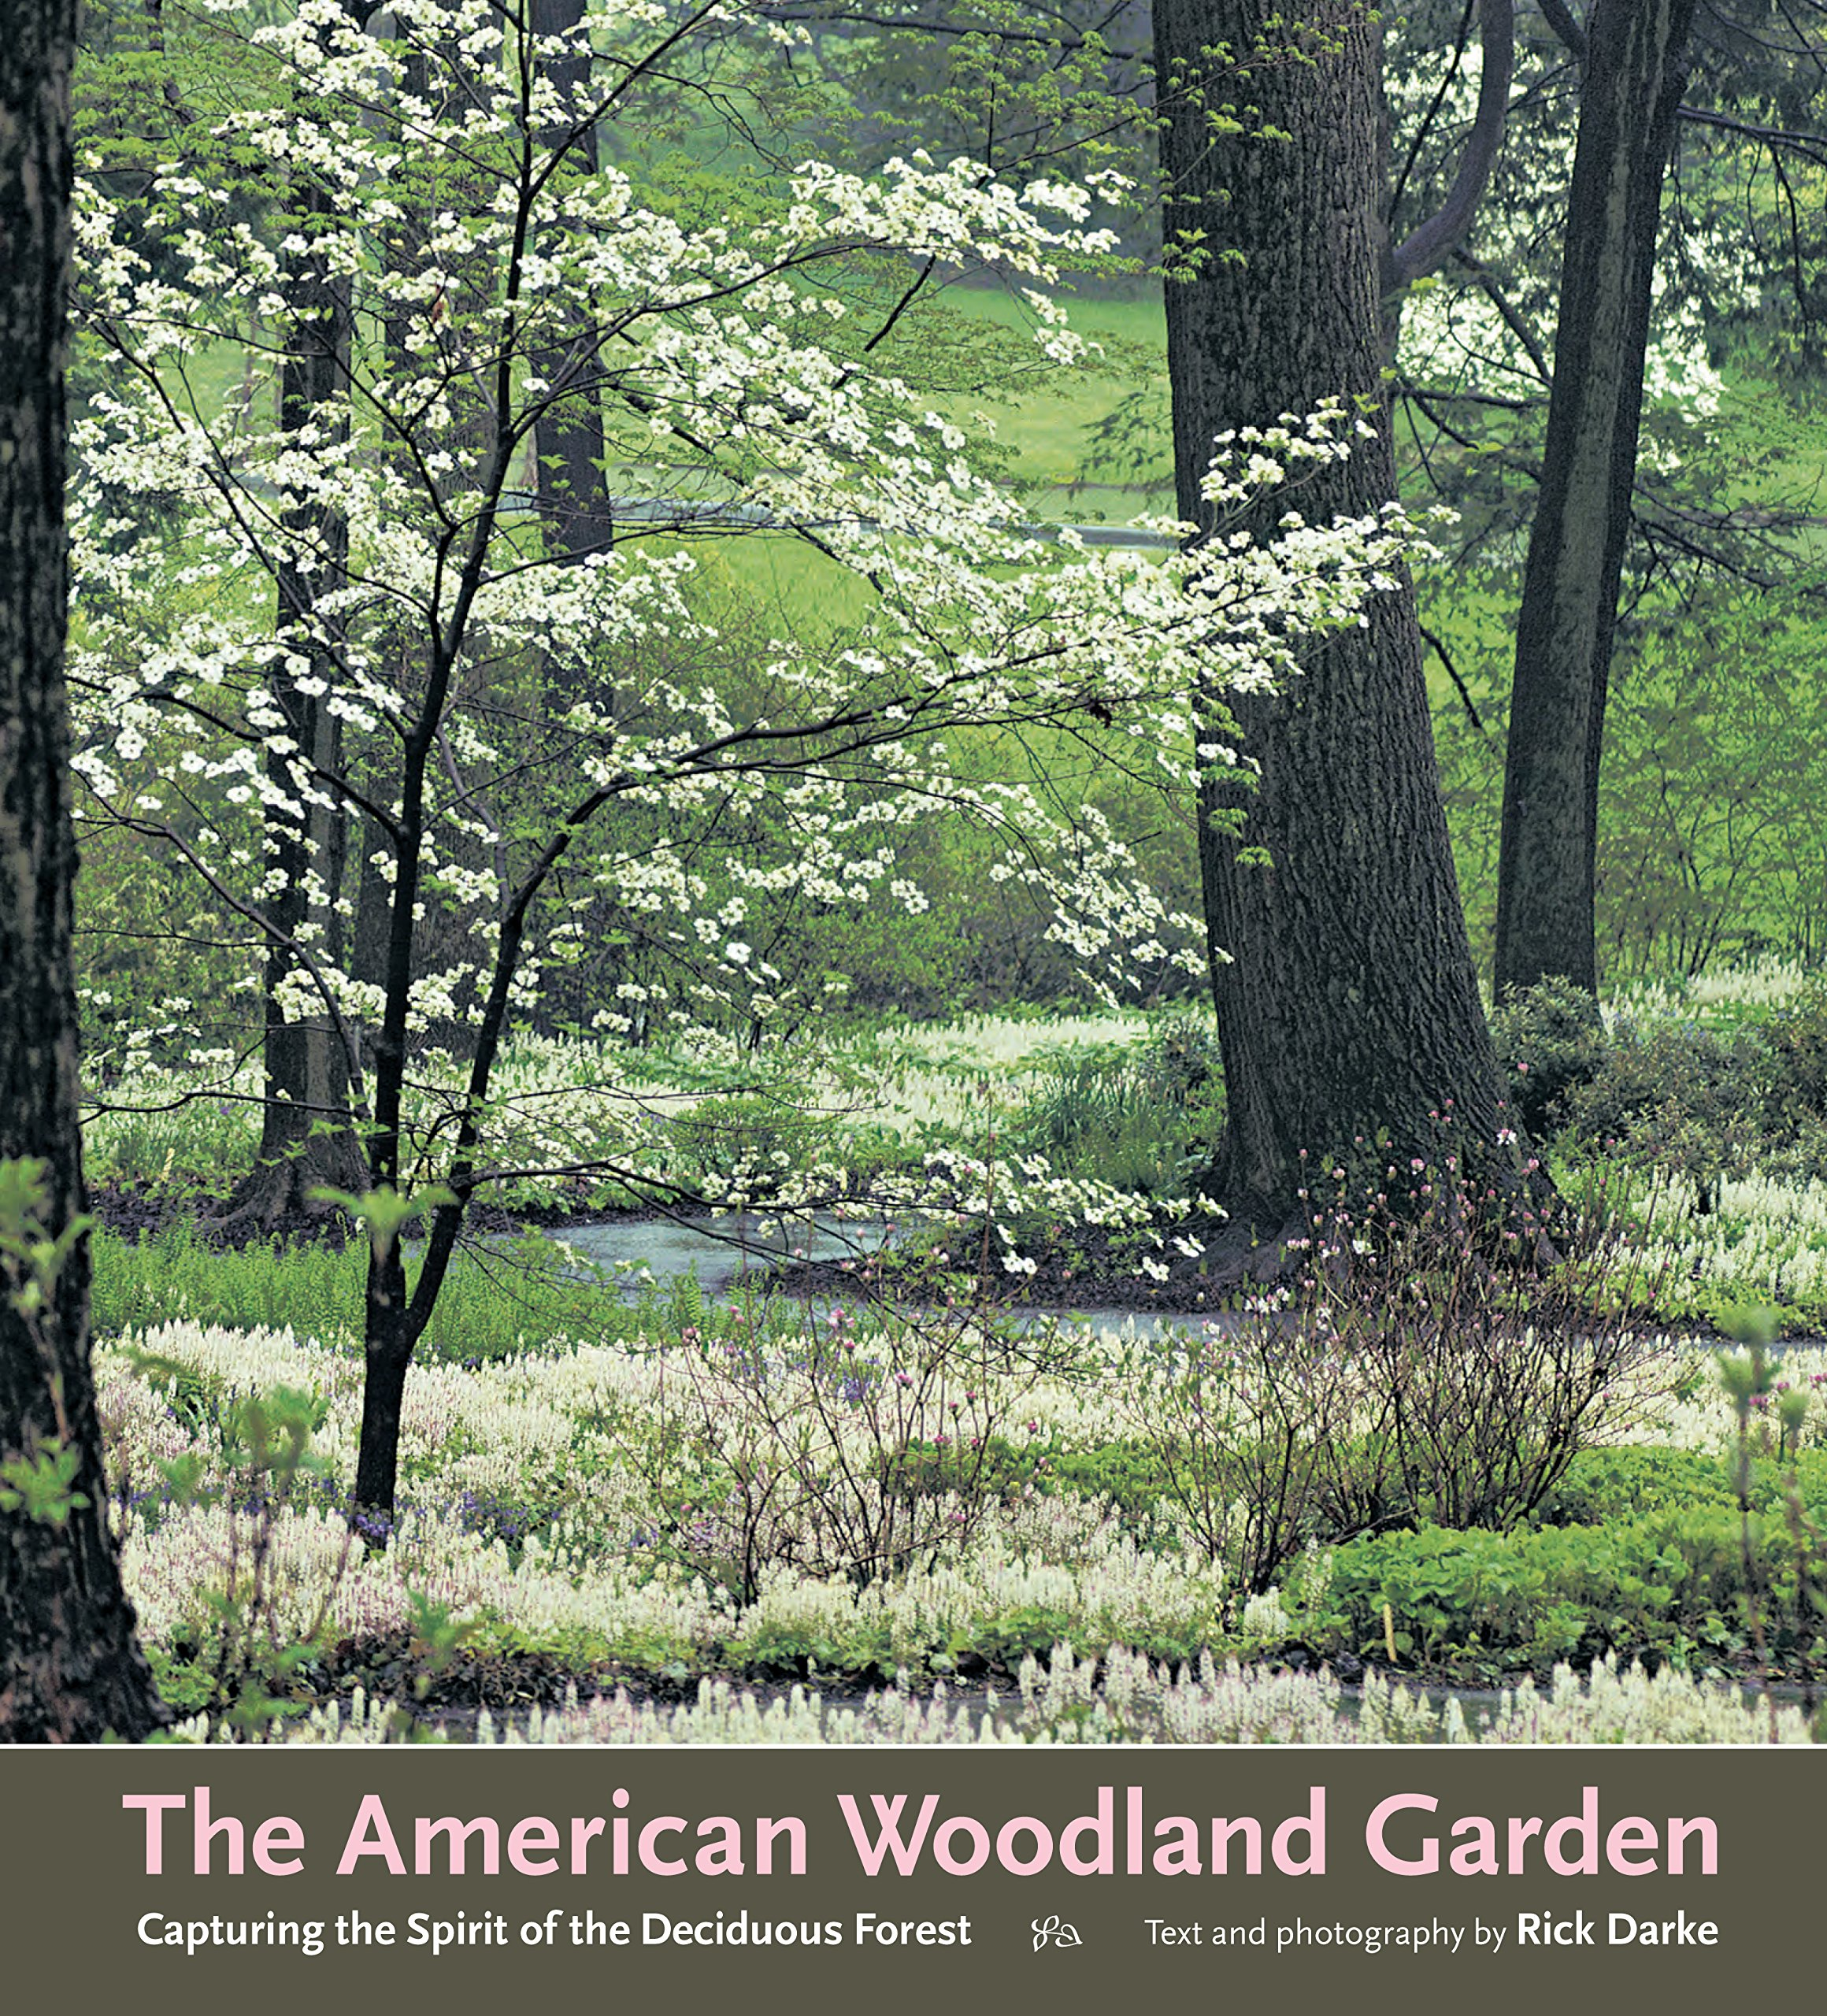 The American Woodland Garden: Capturing the Spirit of the Deciduous on patio ideas, virginia landscaping ideas, upcycled decorating ideas, azalea landscape ideas, formal dining room ideas, garden path ideas, full basement ideas, cement driveway ideas, large mudroom ideas, eco-friendly fence ideas, landscape property line ideas, fort building ideas, double oven ideas, homemade fort ideas, low maintenance fence ideas, recycled garden ideas, treehouse ideas, microwave ideas, courtyard fence ideas, updated kitchen ideas,